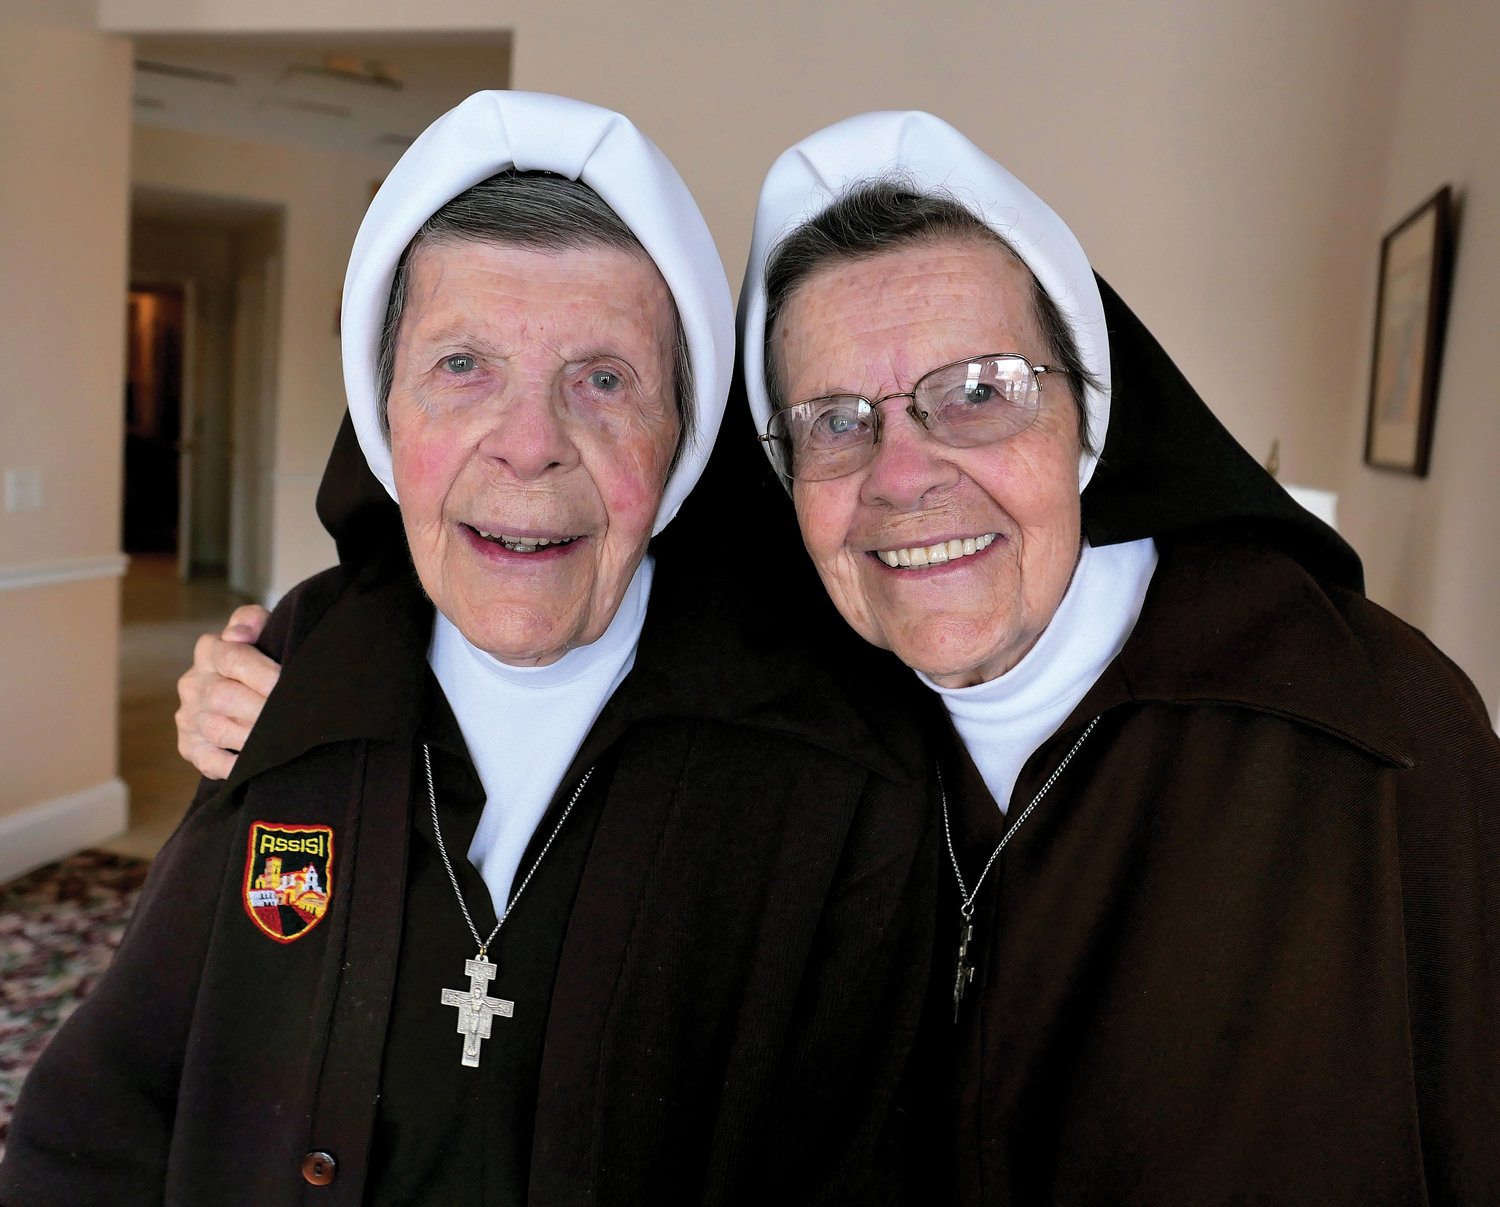 Sister Mary Robert Bernet, O.S.F., left, and her twin sister, Sister Mary Clare Bernet, O.S.F., share a smile last week in their convent in Peekskill. Both are Sisters of St. Francis of the Neumann Communities. The retired longtime teachers are celebrating 70 years of religious life.